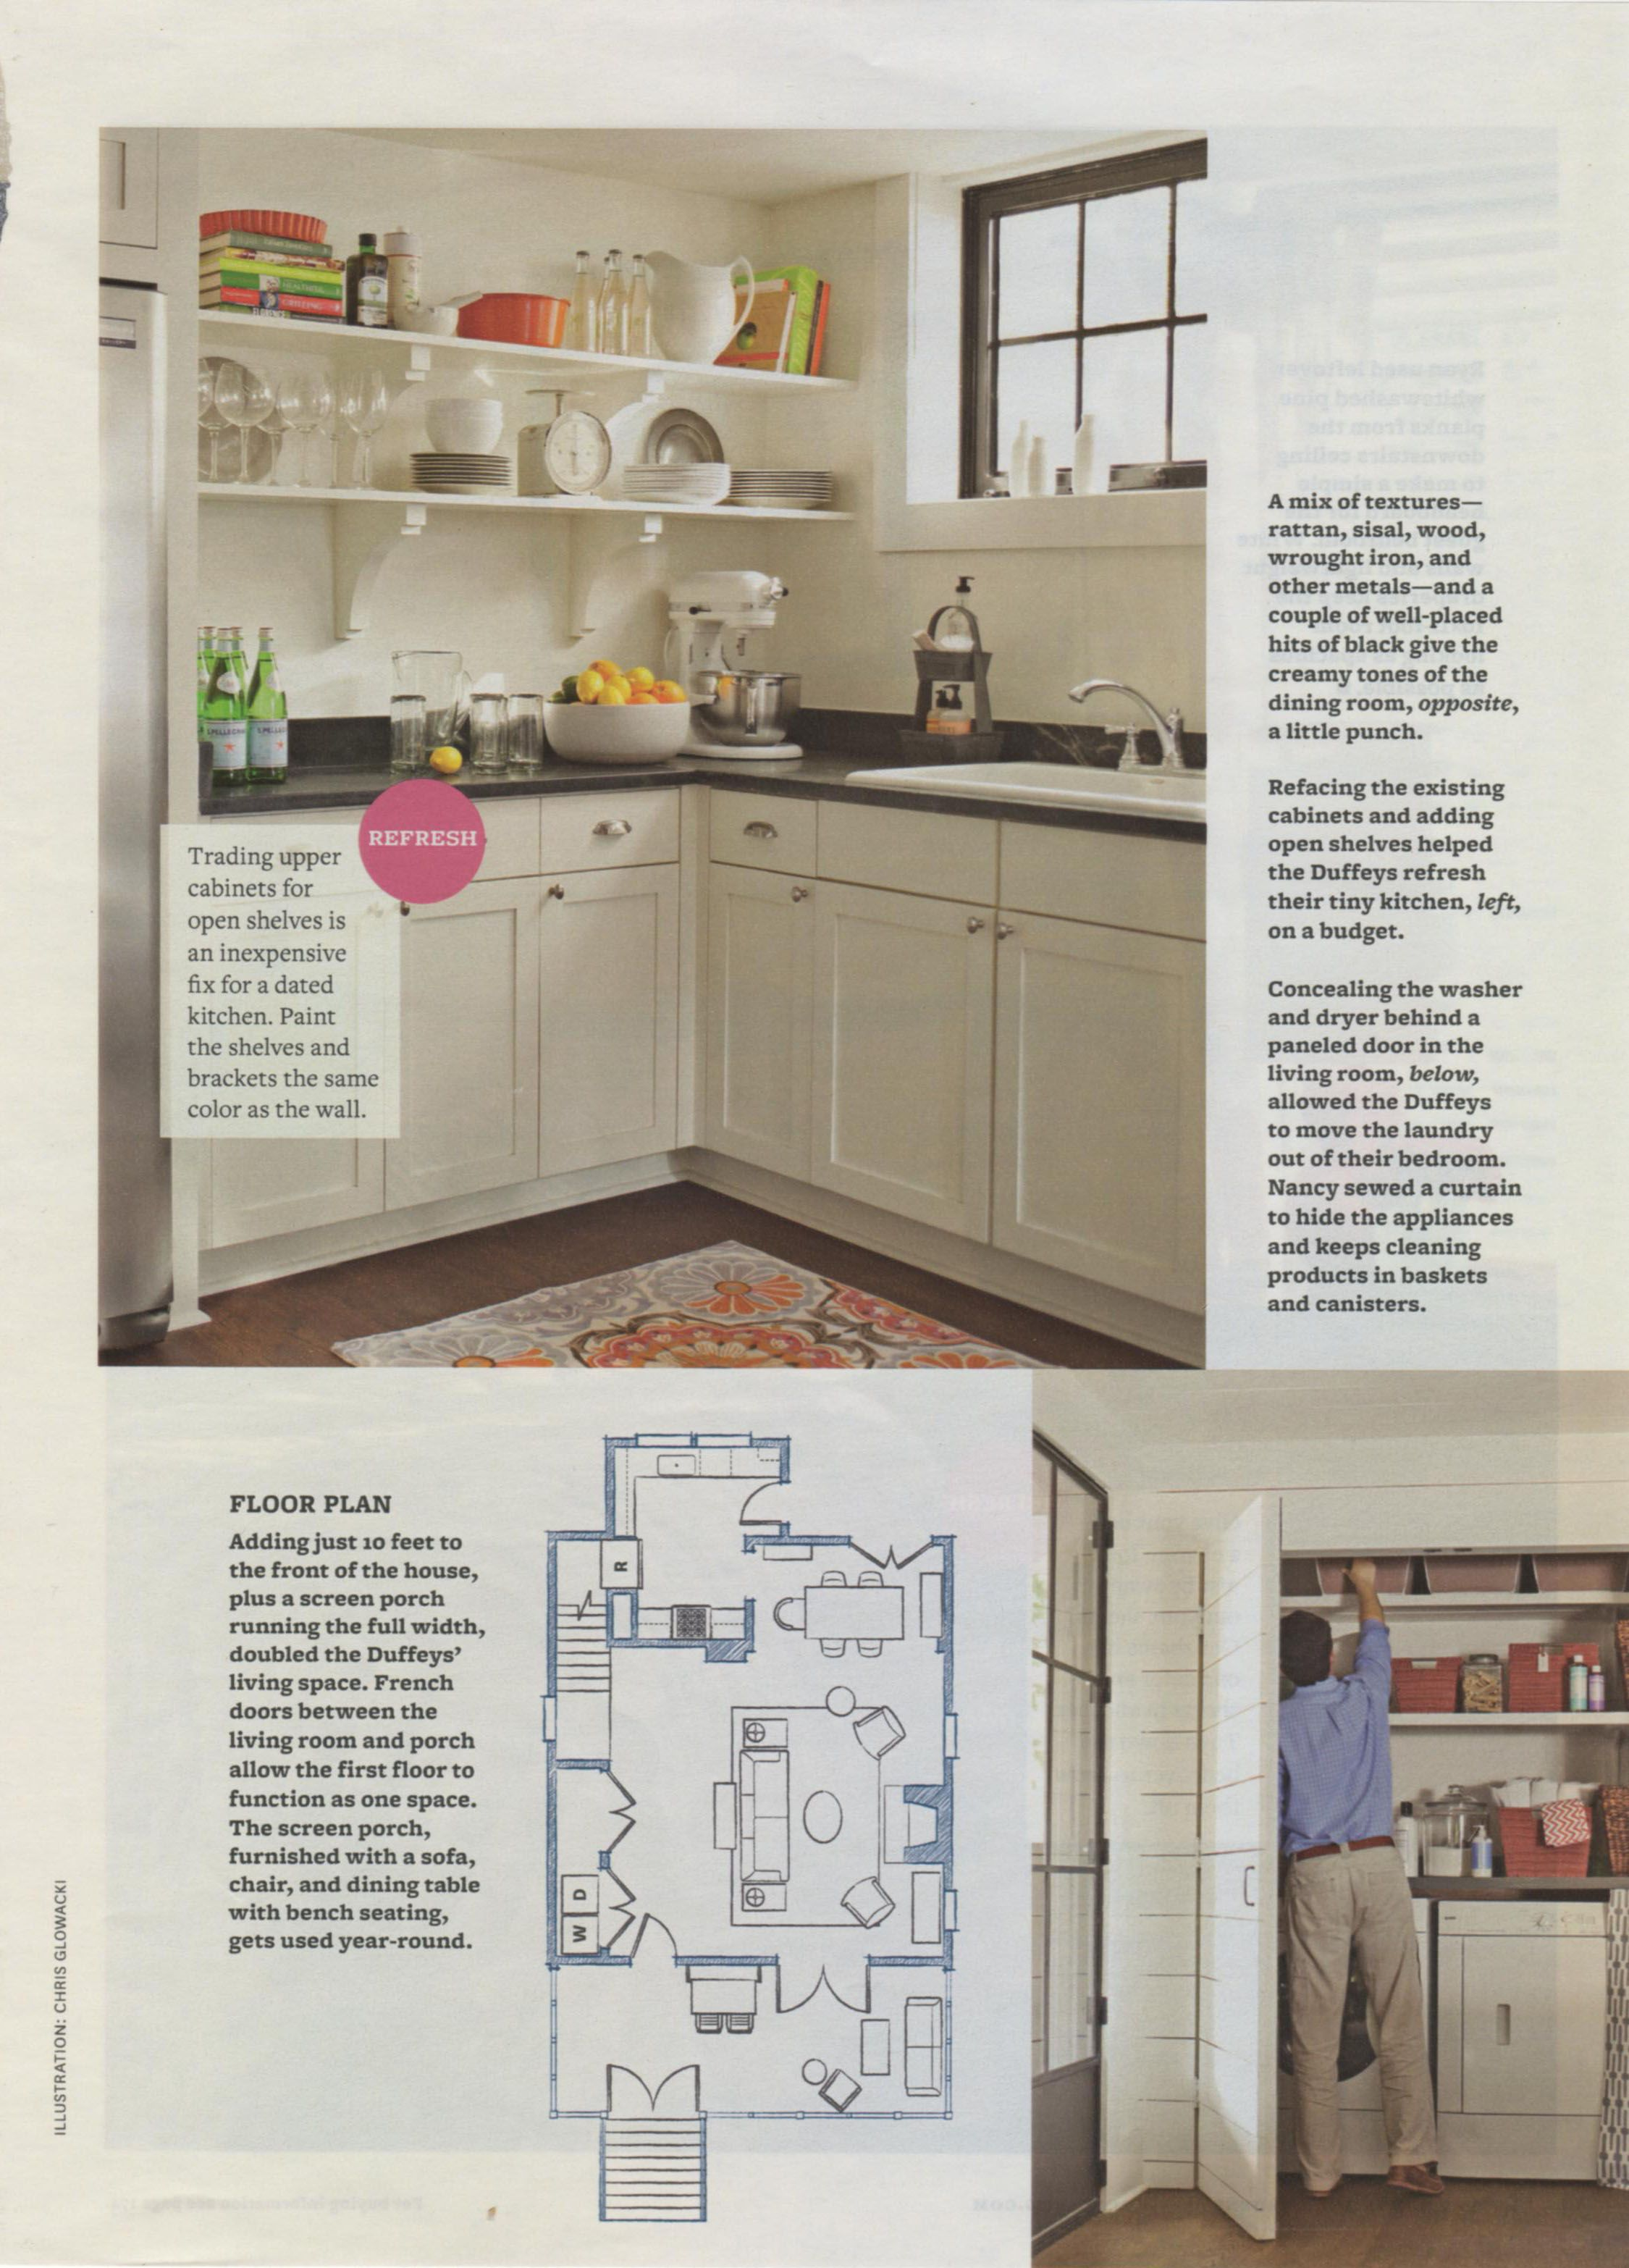 Article Featuring Our Home In Better Homes And Gardens Kitchen